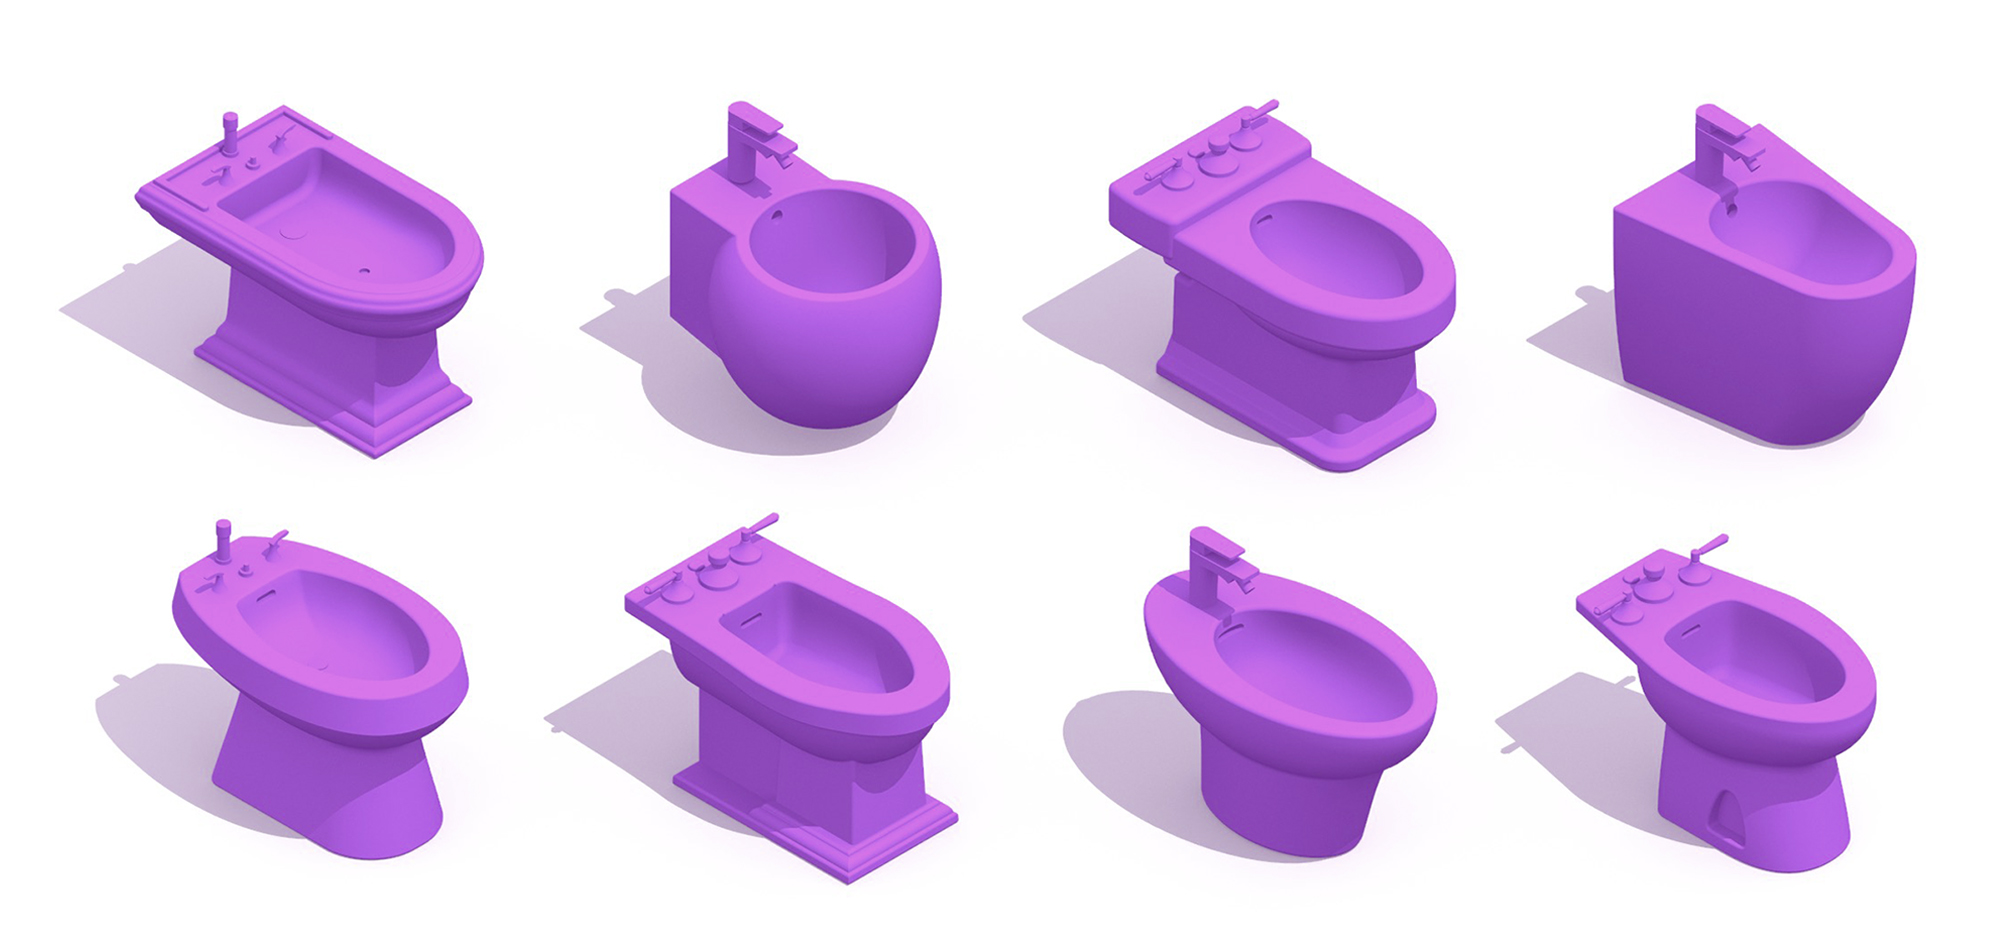 Collection of 3D Bidets illustrating a variety of bidet designs, sizes, and styles for use in bathroom design